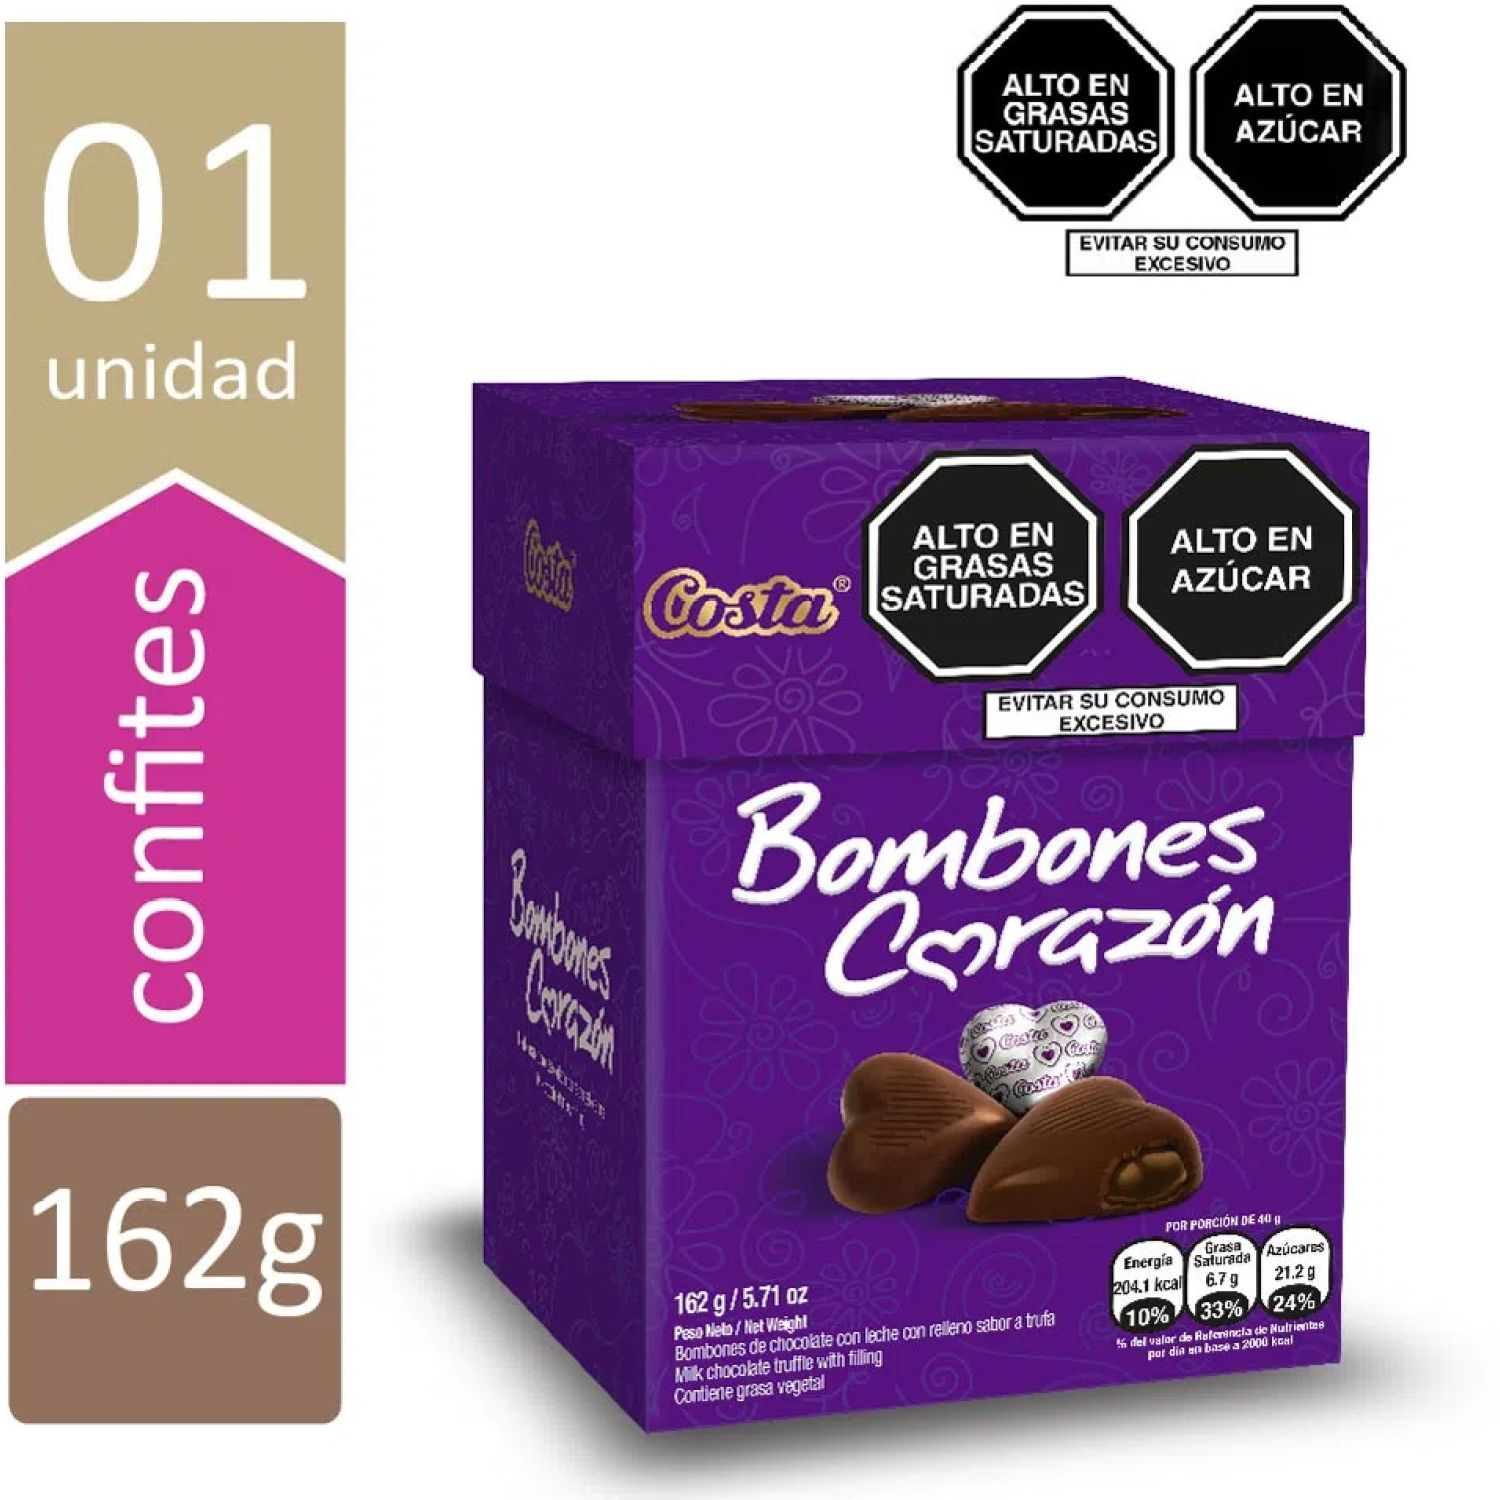 COSTA Costa Bombon Corazon Display 162 G. Varios Surtidos de dulces y chocolate